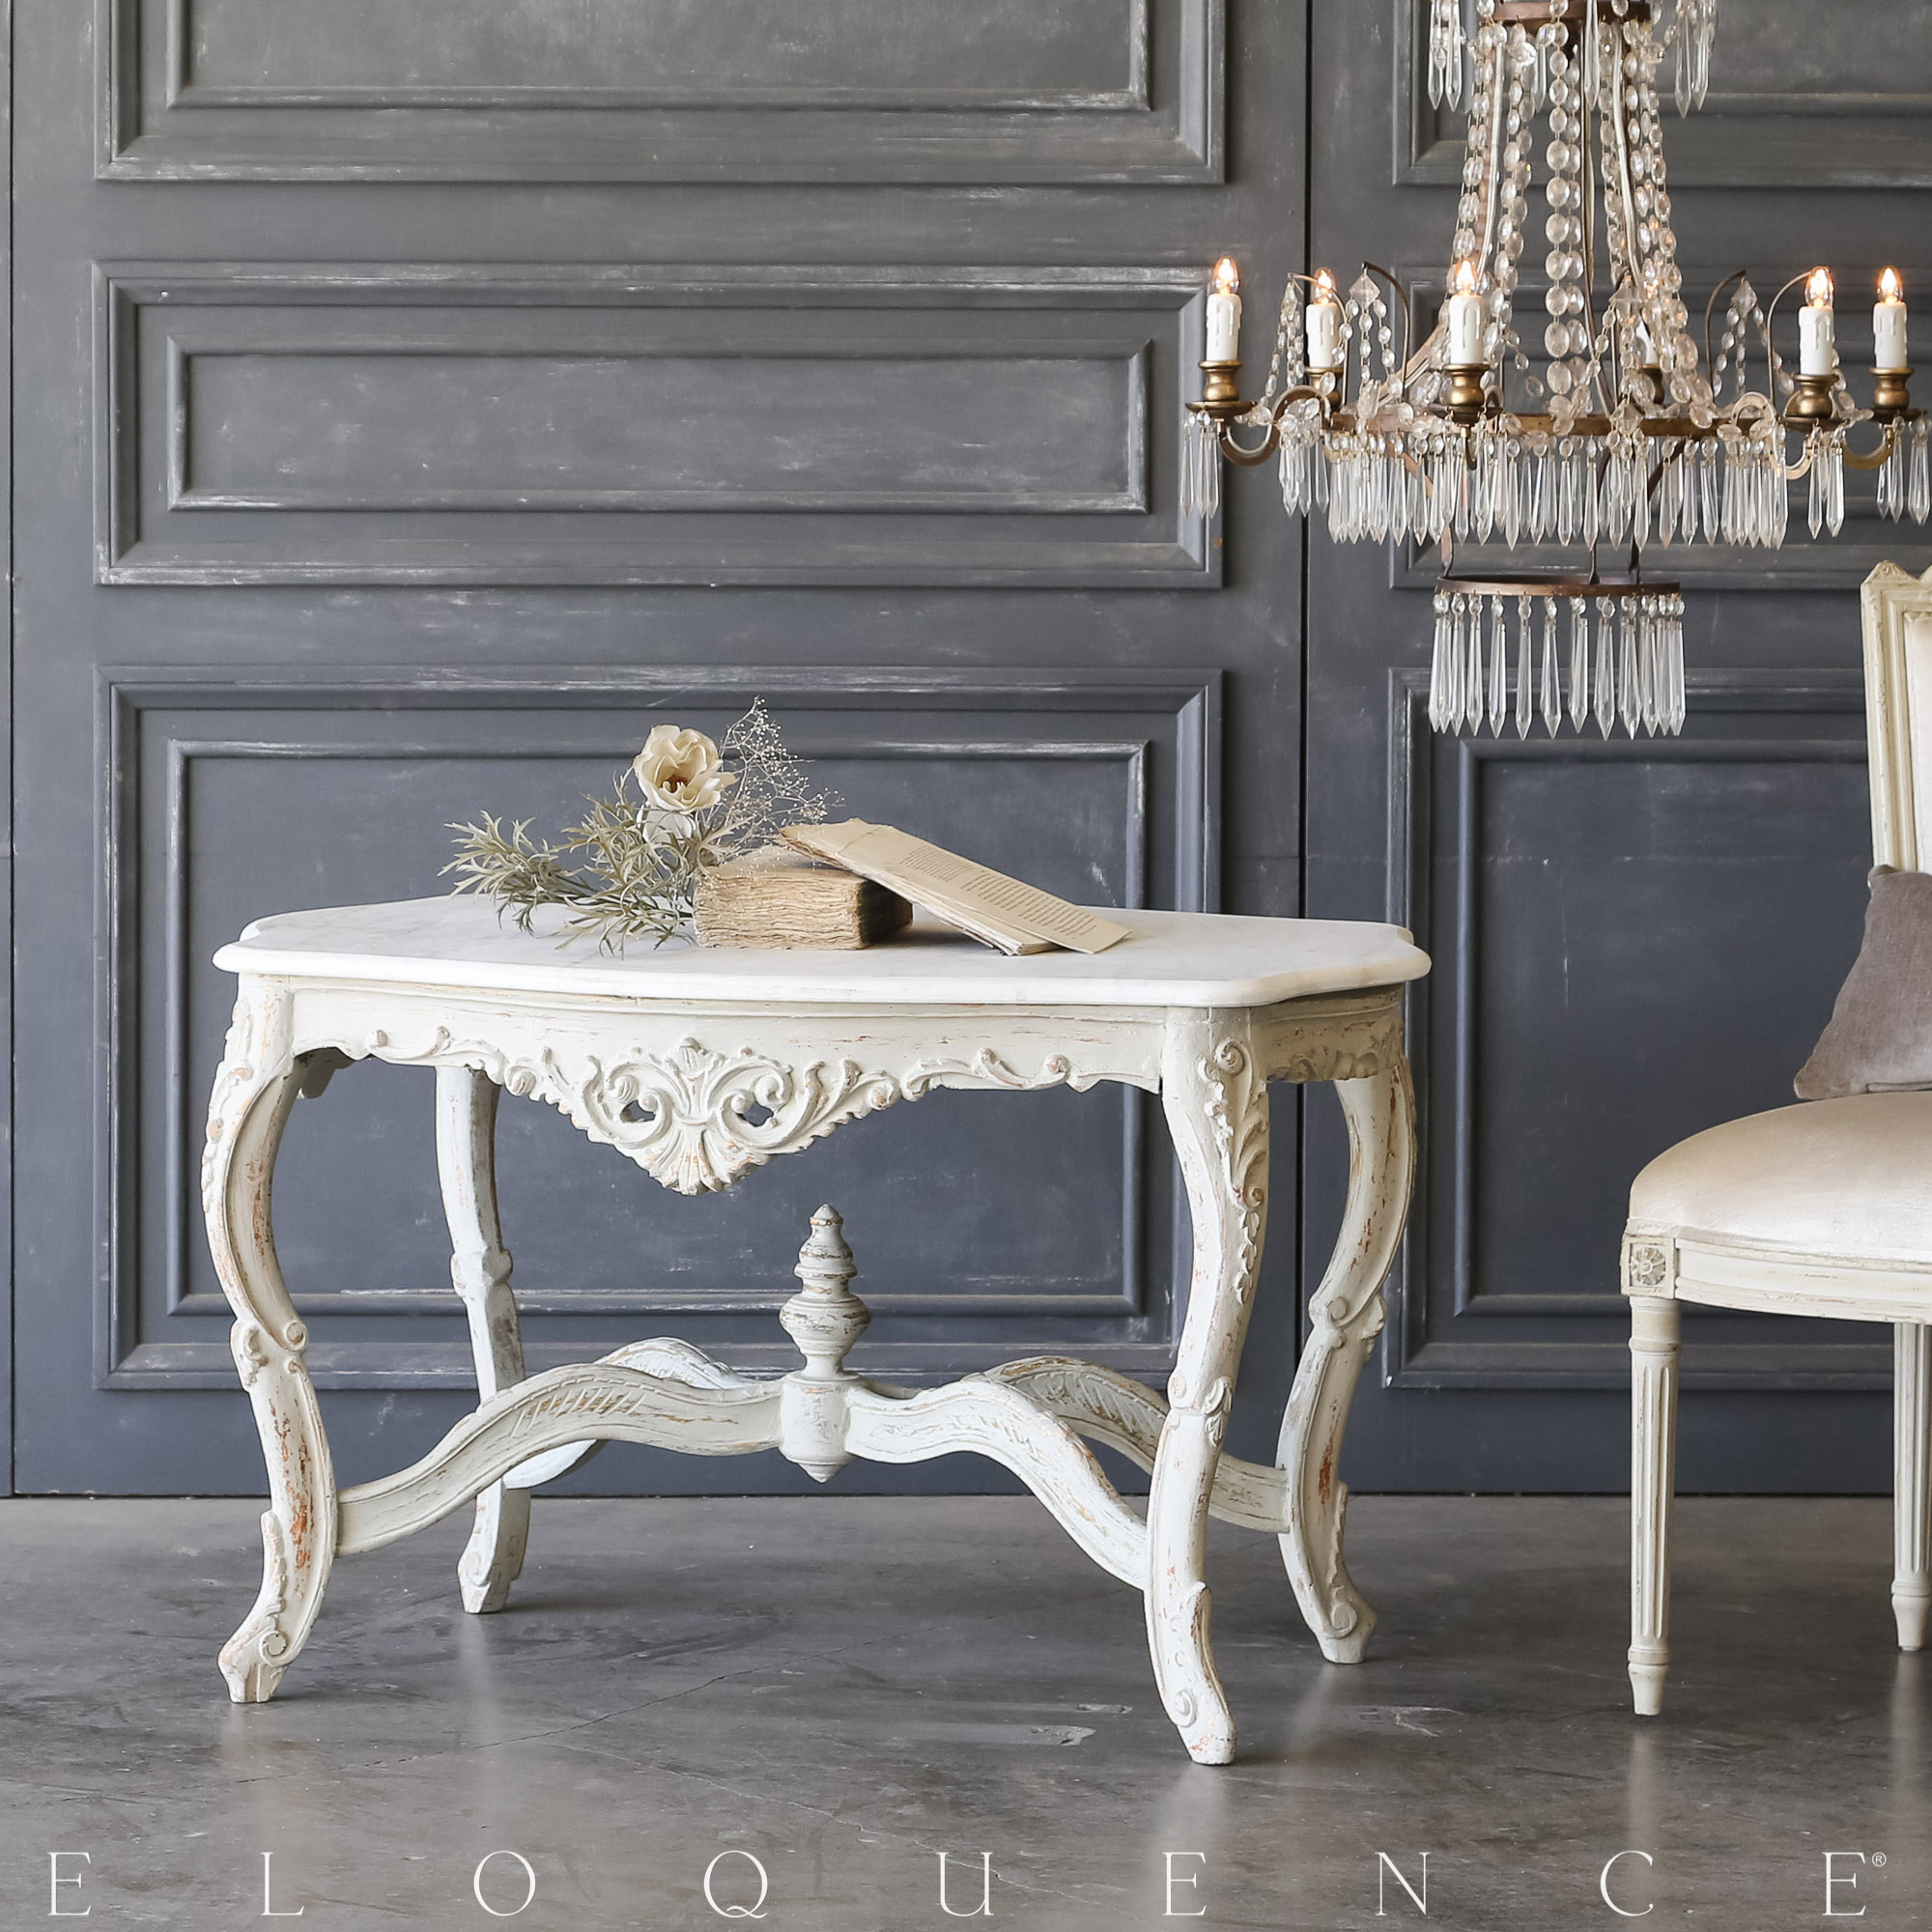 Eloquence® Vintage Opulent Tall Coffee Table: 1940